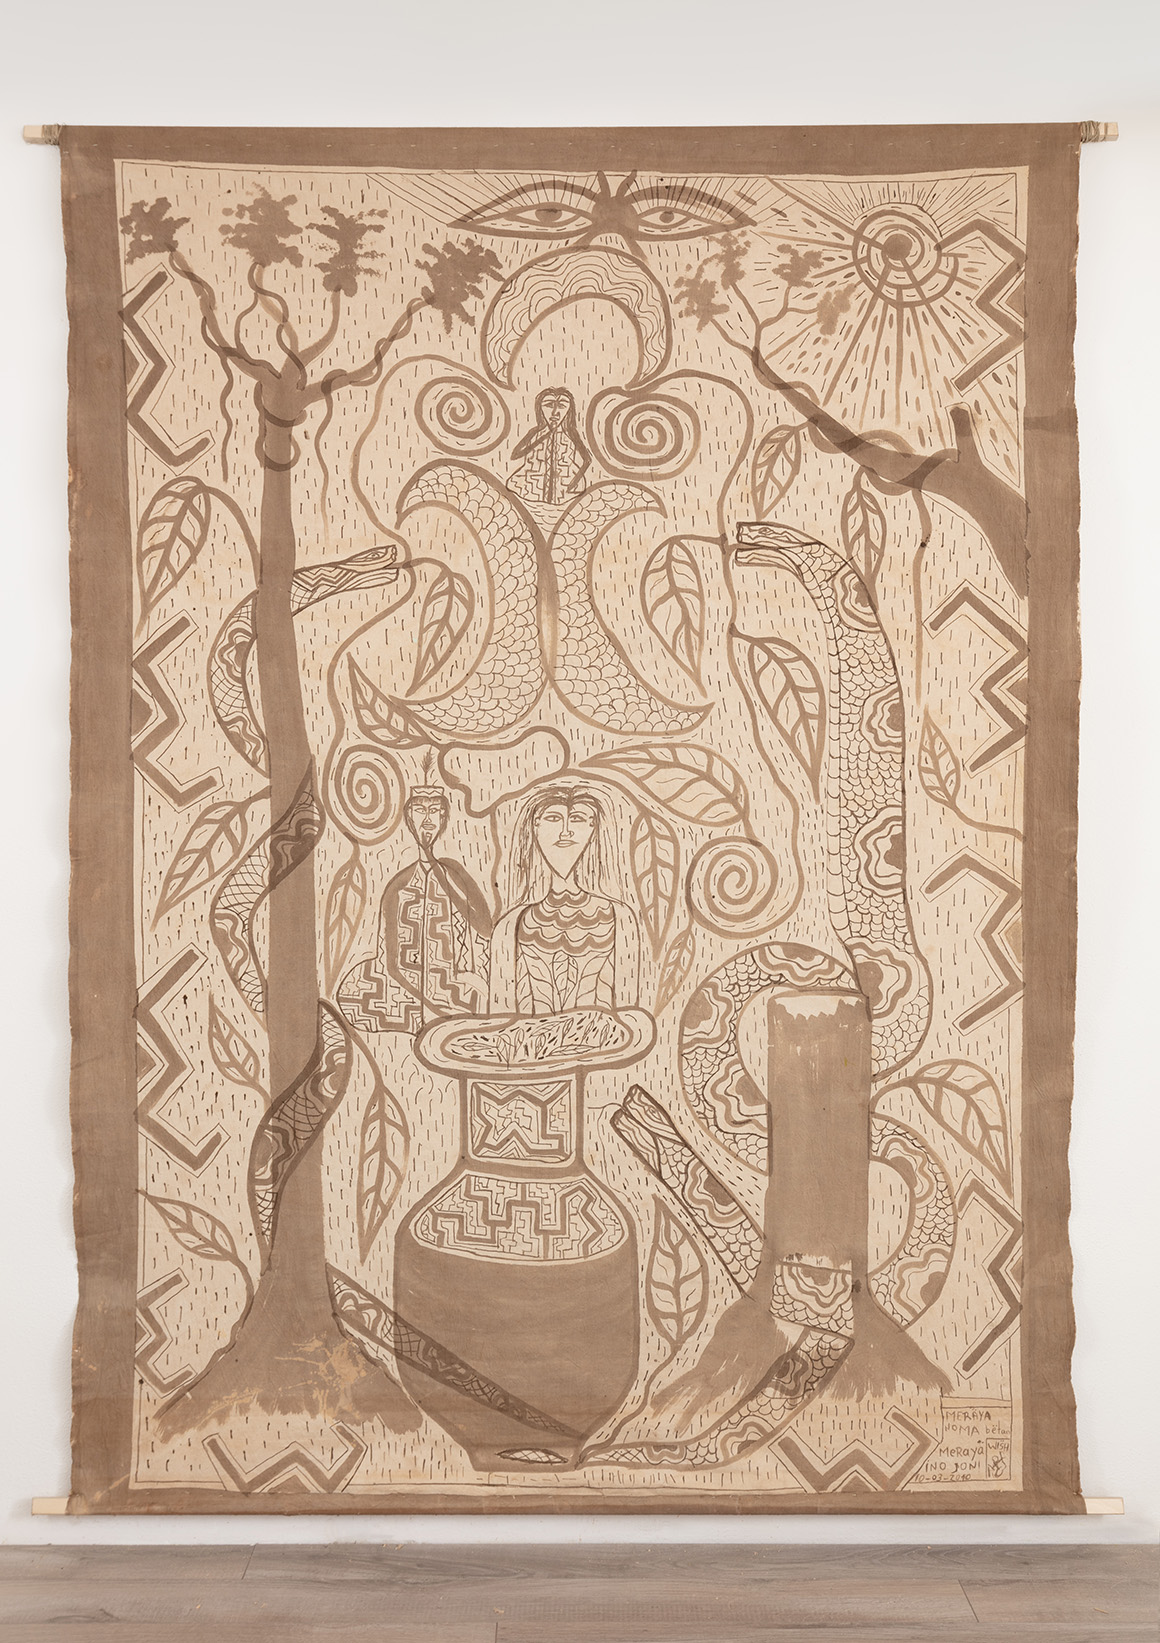 """<p><span class=""""name"""">Filder Augustín Peña</span><br><em>La Mujer Curandera y el Hombre Jaguar Curandero</em><span class='media'>Ayahuasca on fabric</span>81 x 62 in(205.7 x 157.5 cm)<br>2018<br><a class='inquire' href='mailto:info@gildargallery.com?subject=Artwork Inquiry FAPE0005&body=I am interested in finding out more about La Mujer Curandera y el Hombre Jaguar Curandero by Filder Augustín Peña'>Inquire</a></p>"""